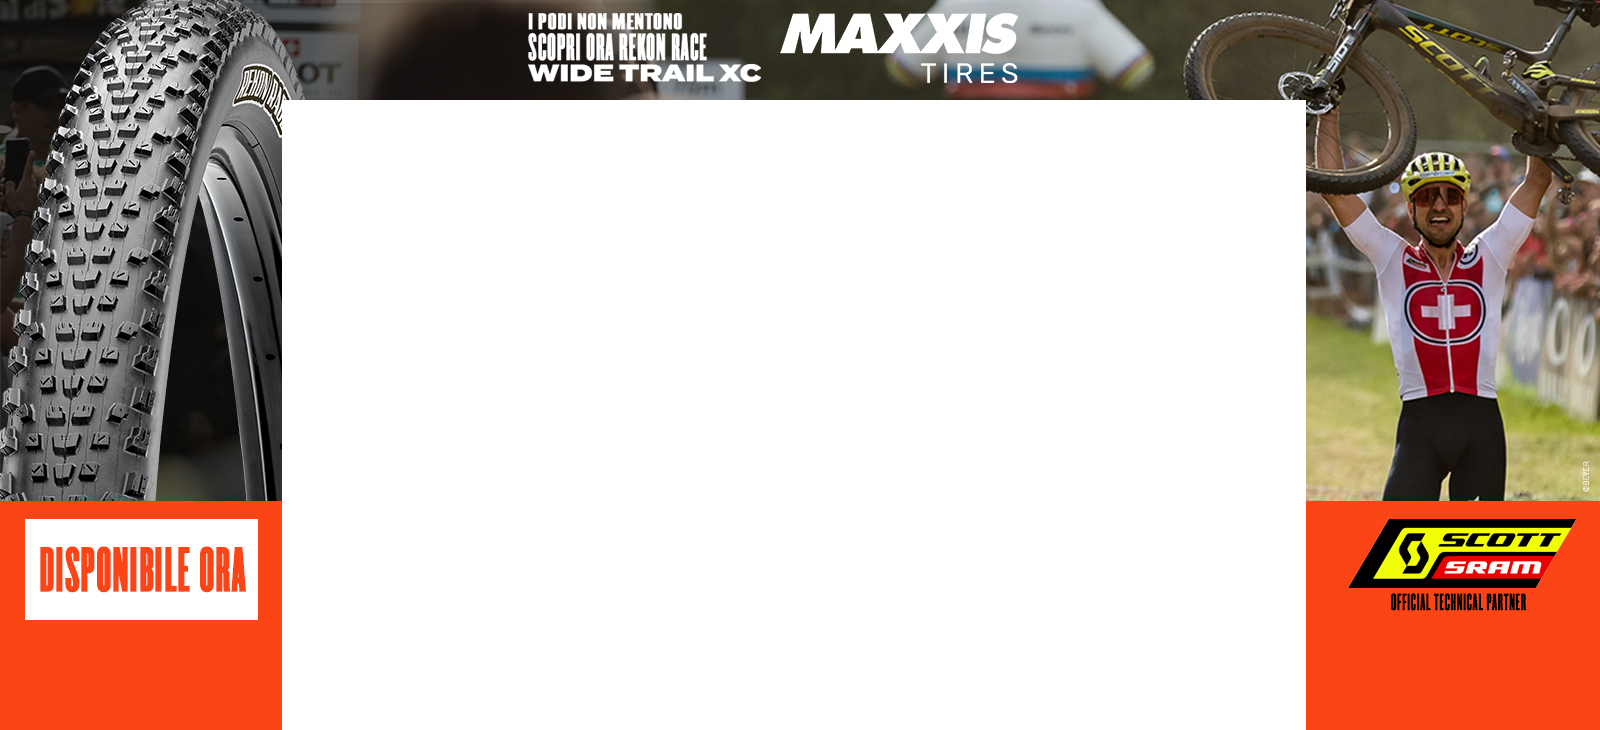 Maxxis recon race WTX